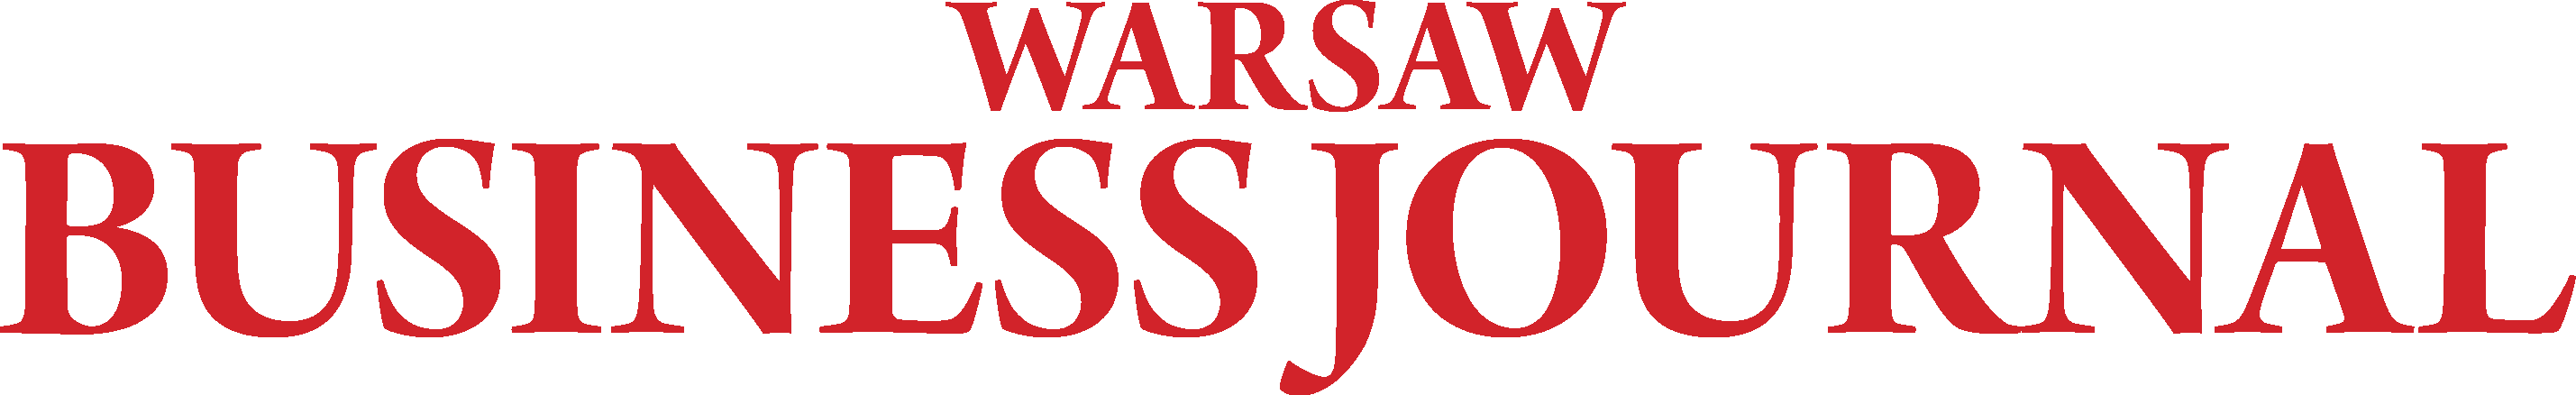 Warsaw Business Journal